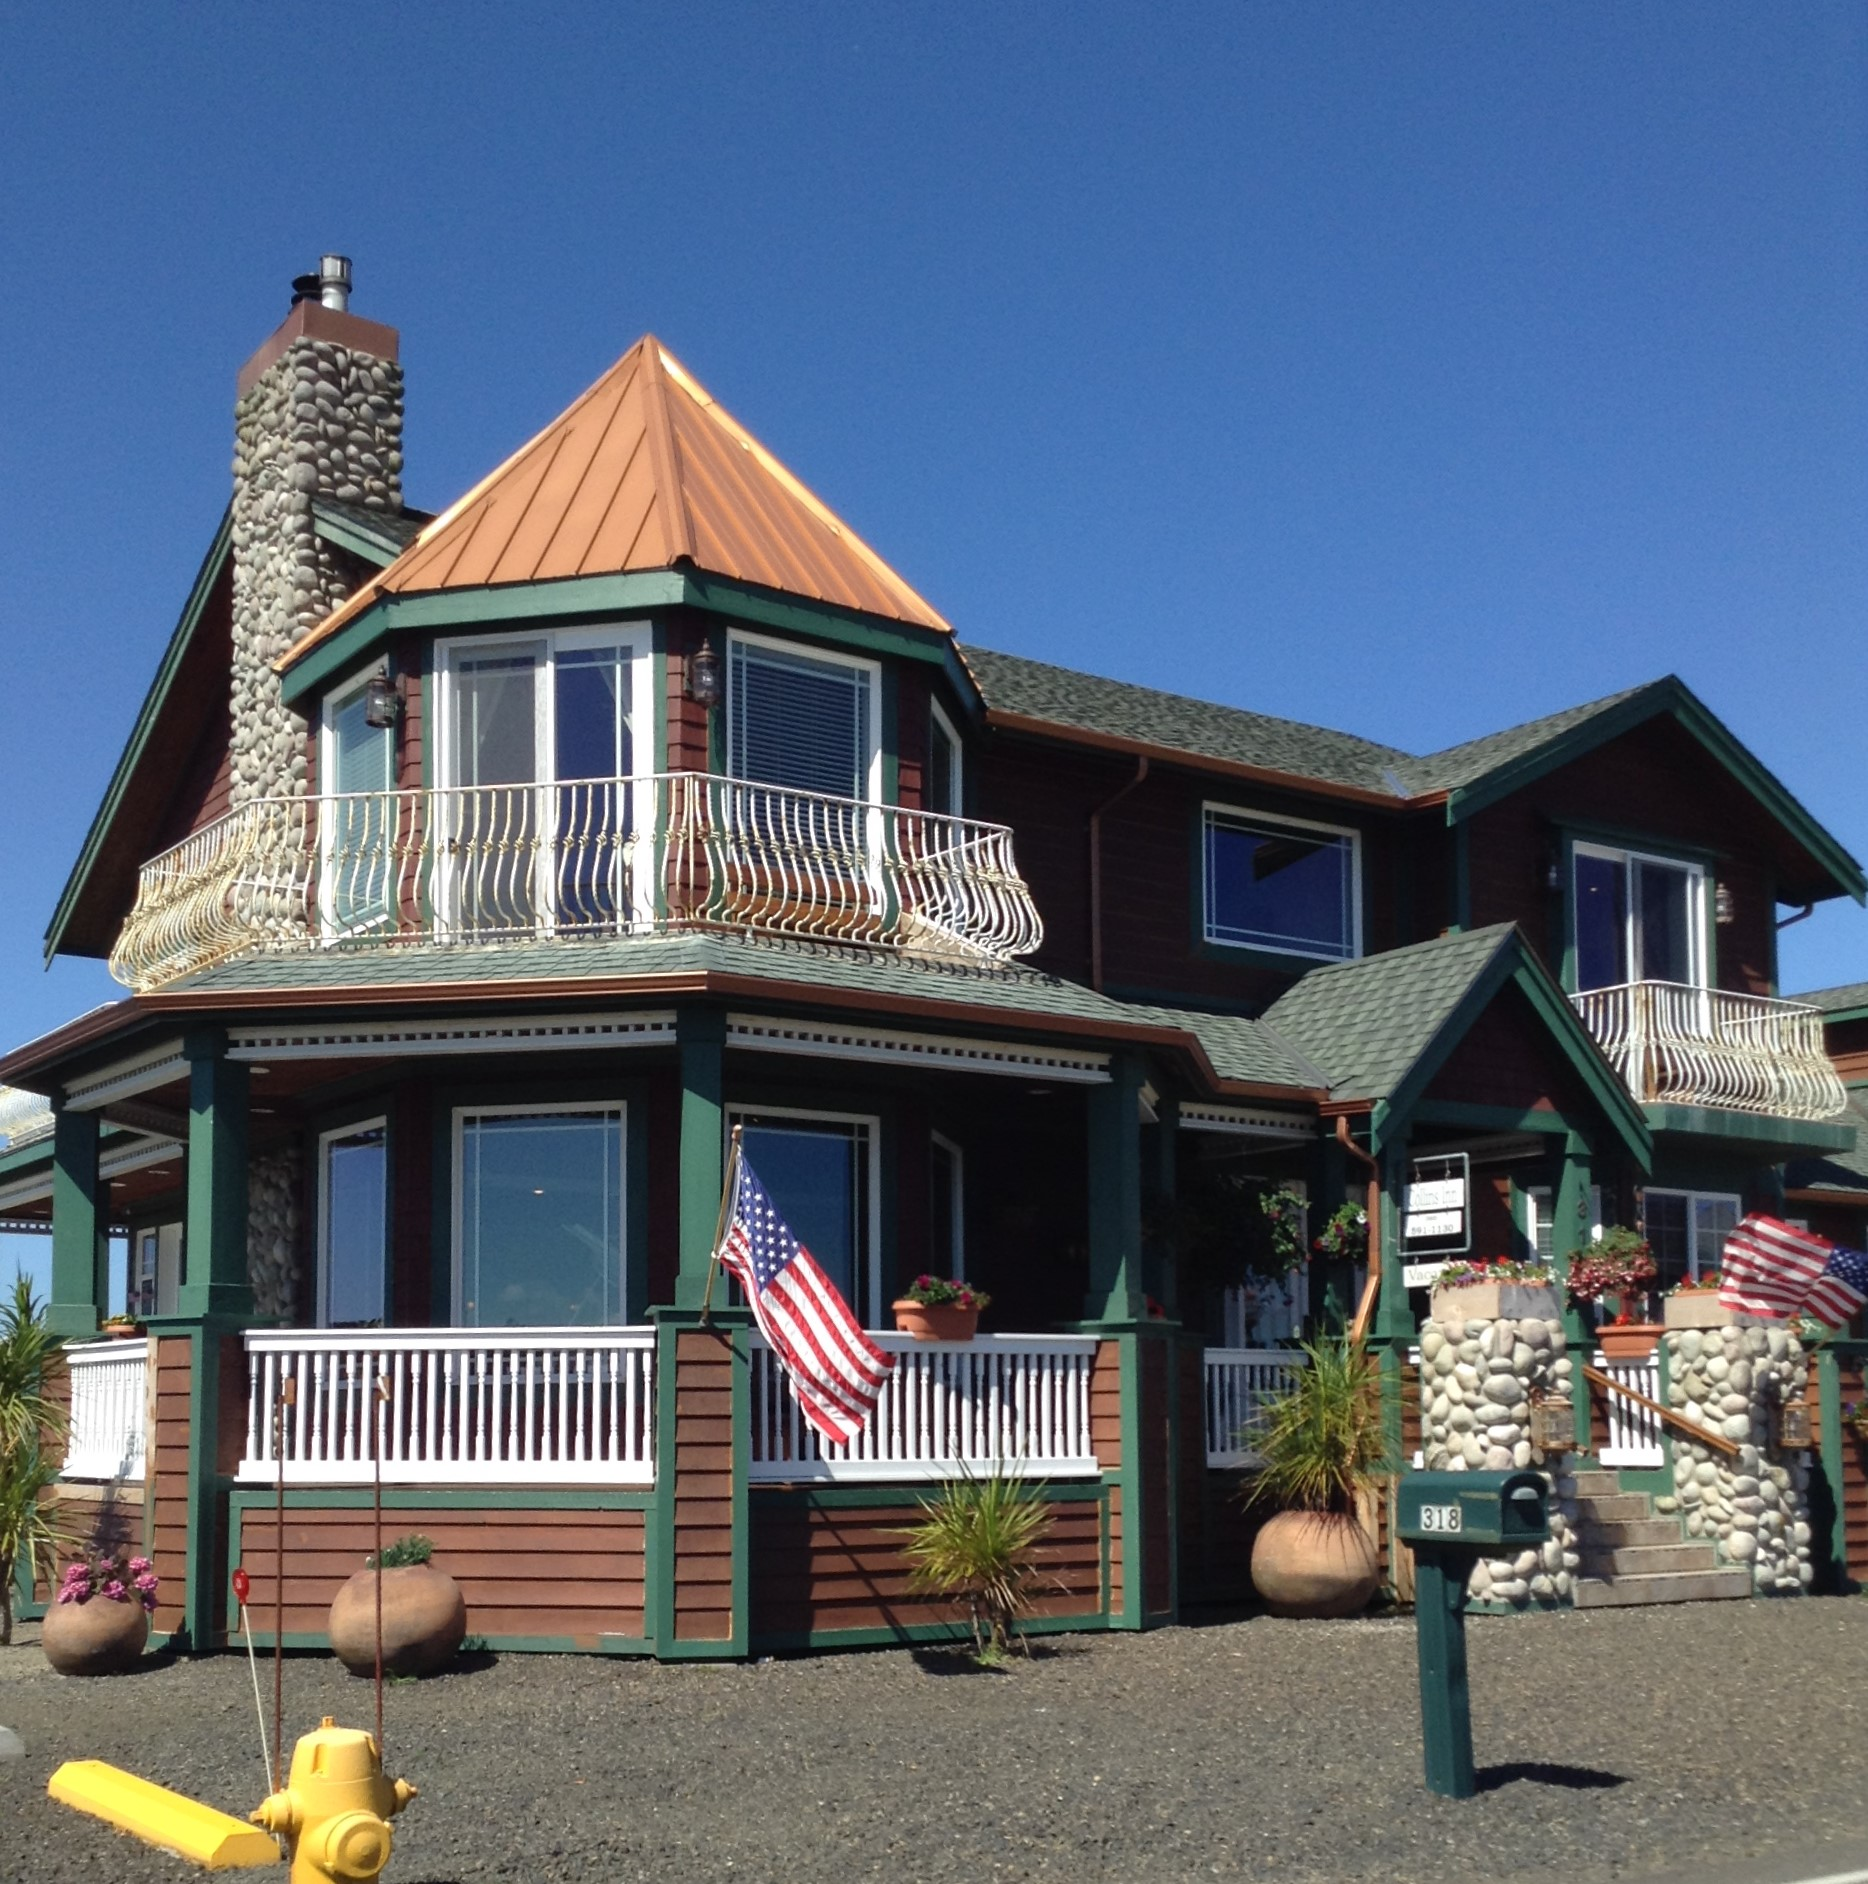 The Collins Inn and Seaside Cottages, Oceans Shores, Washington USA #graysharborbeaches